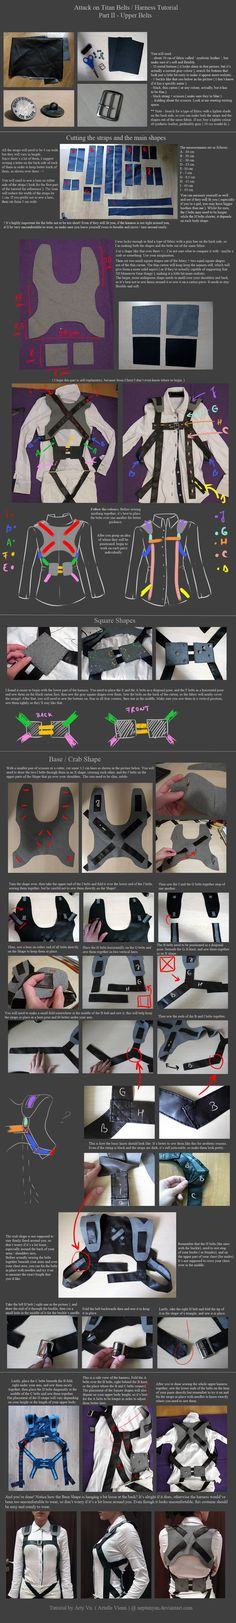 Attack on Titan Belts / Harness tutorial - Part 2 by neptunyan.deviantart.com on @deviantART